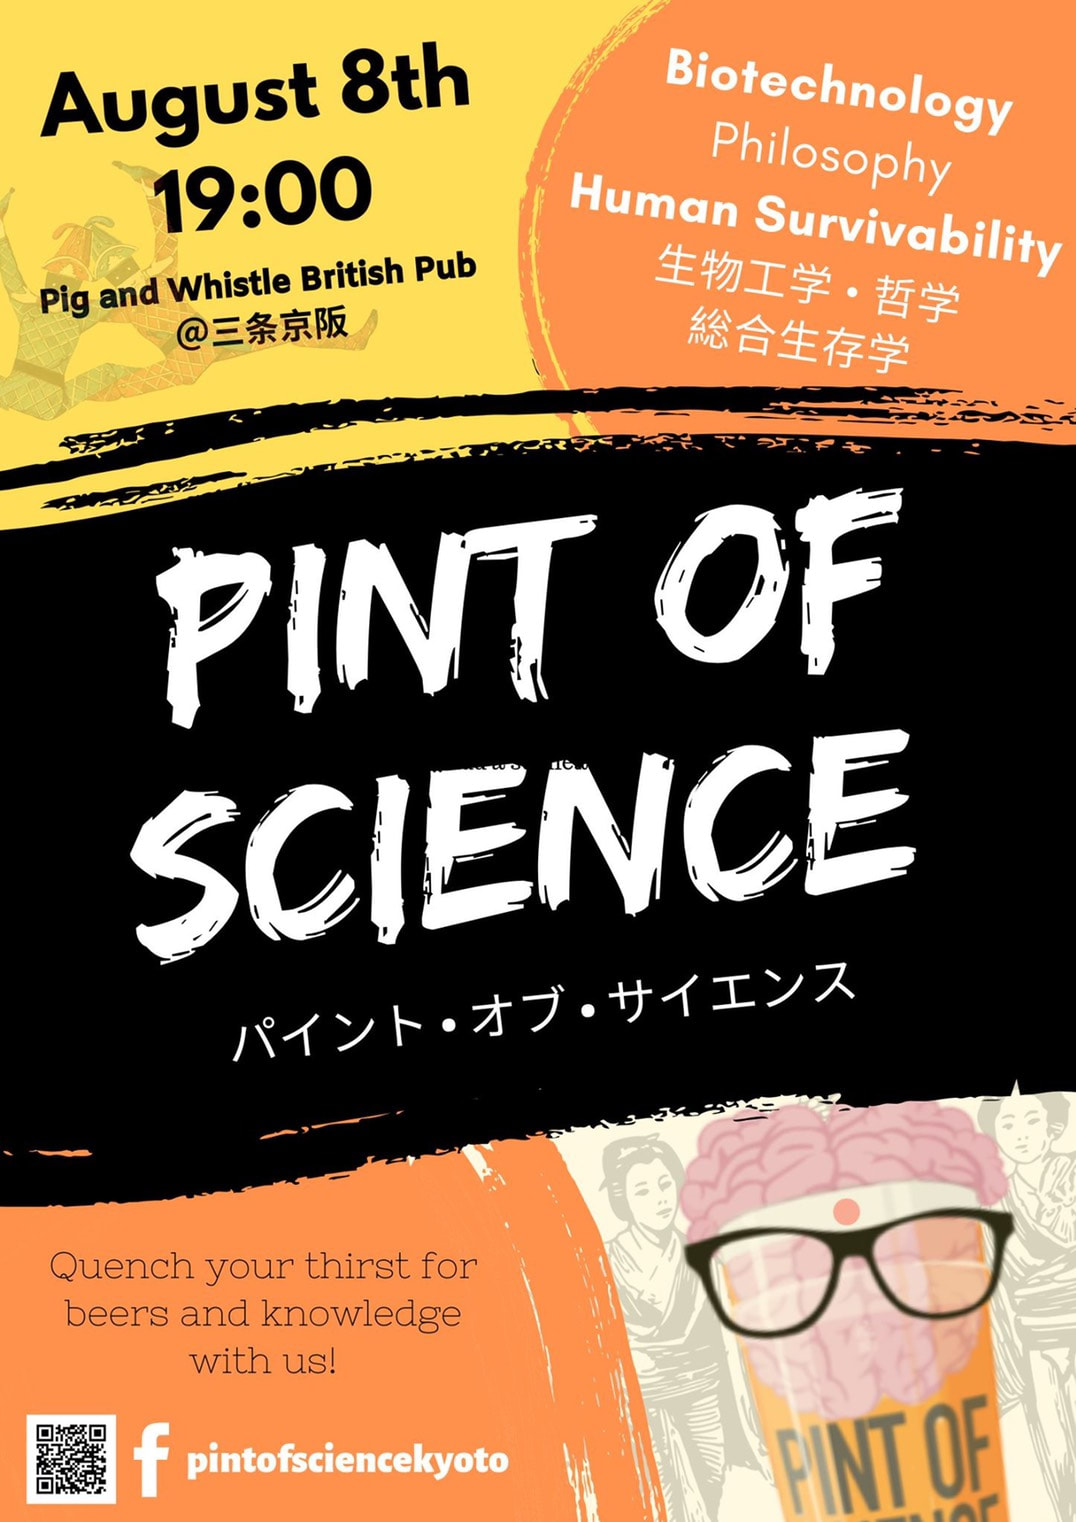 Pint of Science Event Poster